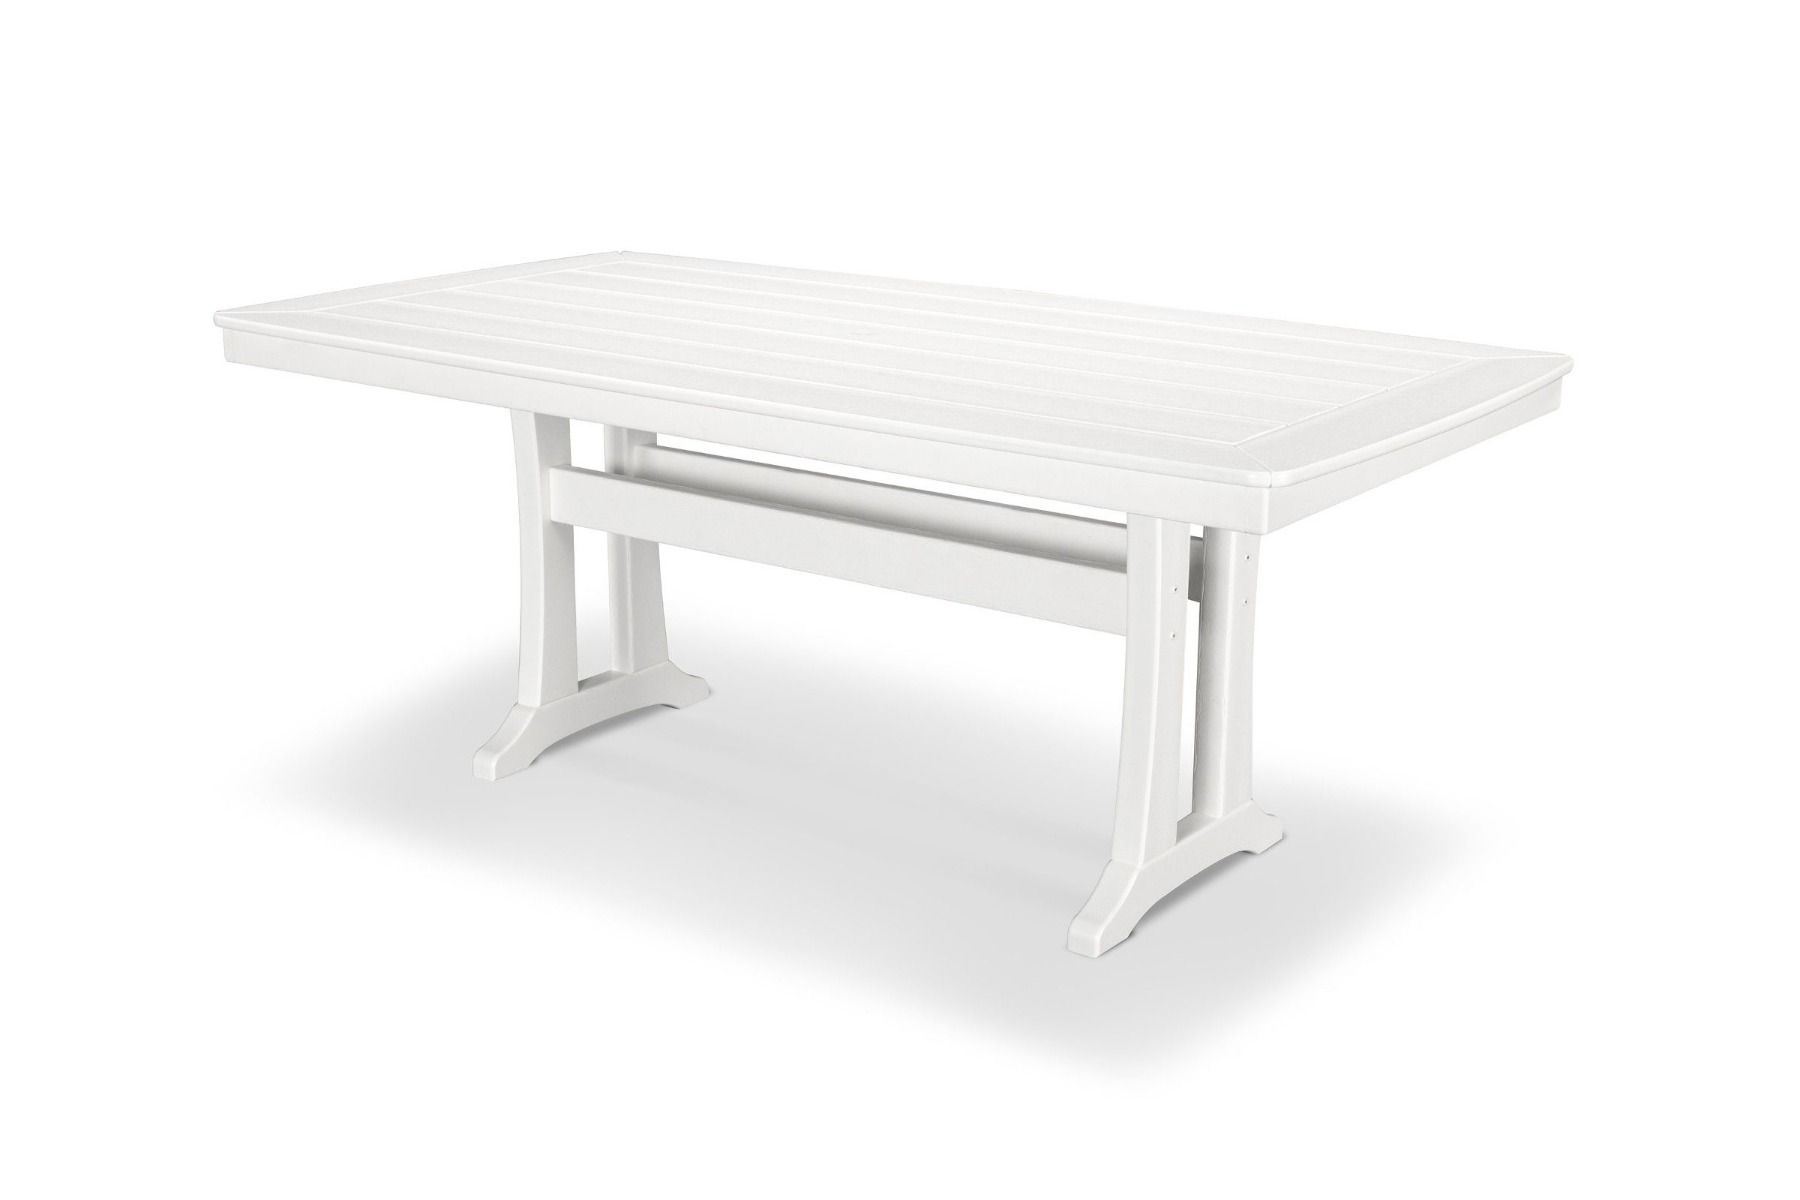 """Nautical Trestle 38"""" X 73"""" Dining Table Pl83 T2L1 With Regard To Latest Alexxes 38'' Trestle Dining Tables (View 5 of 15)"""